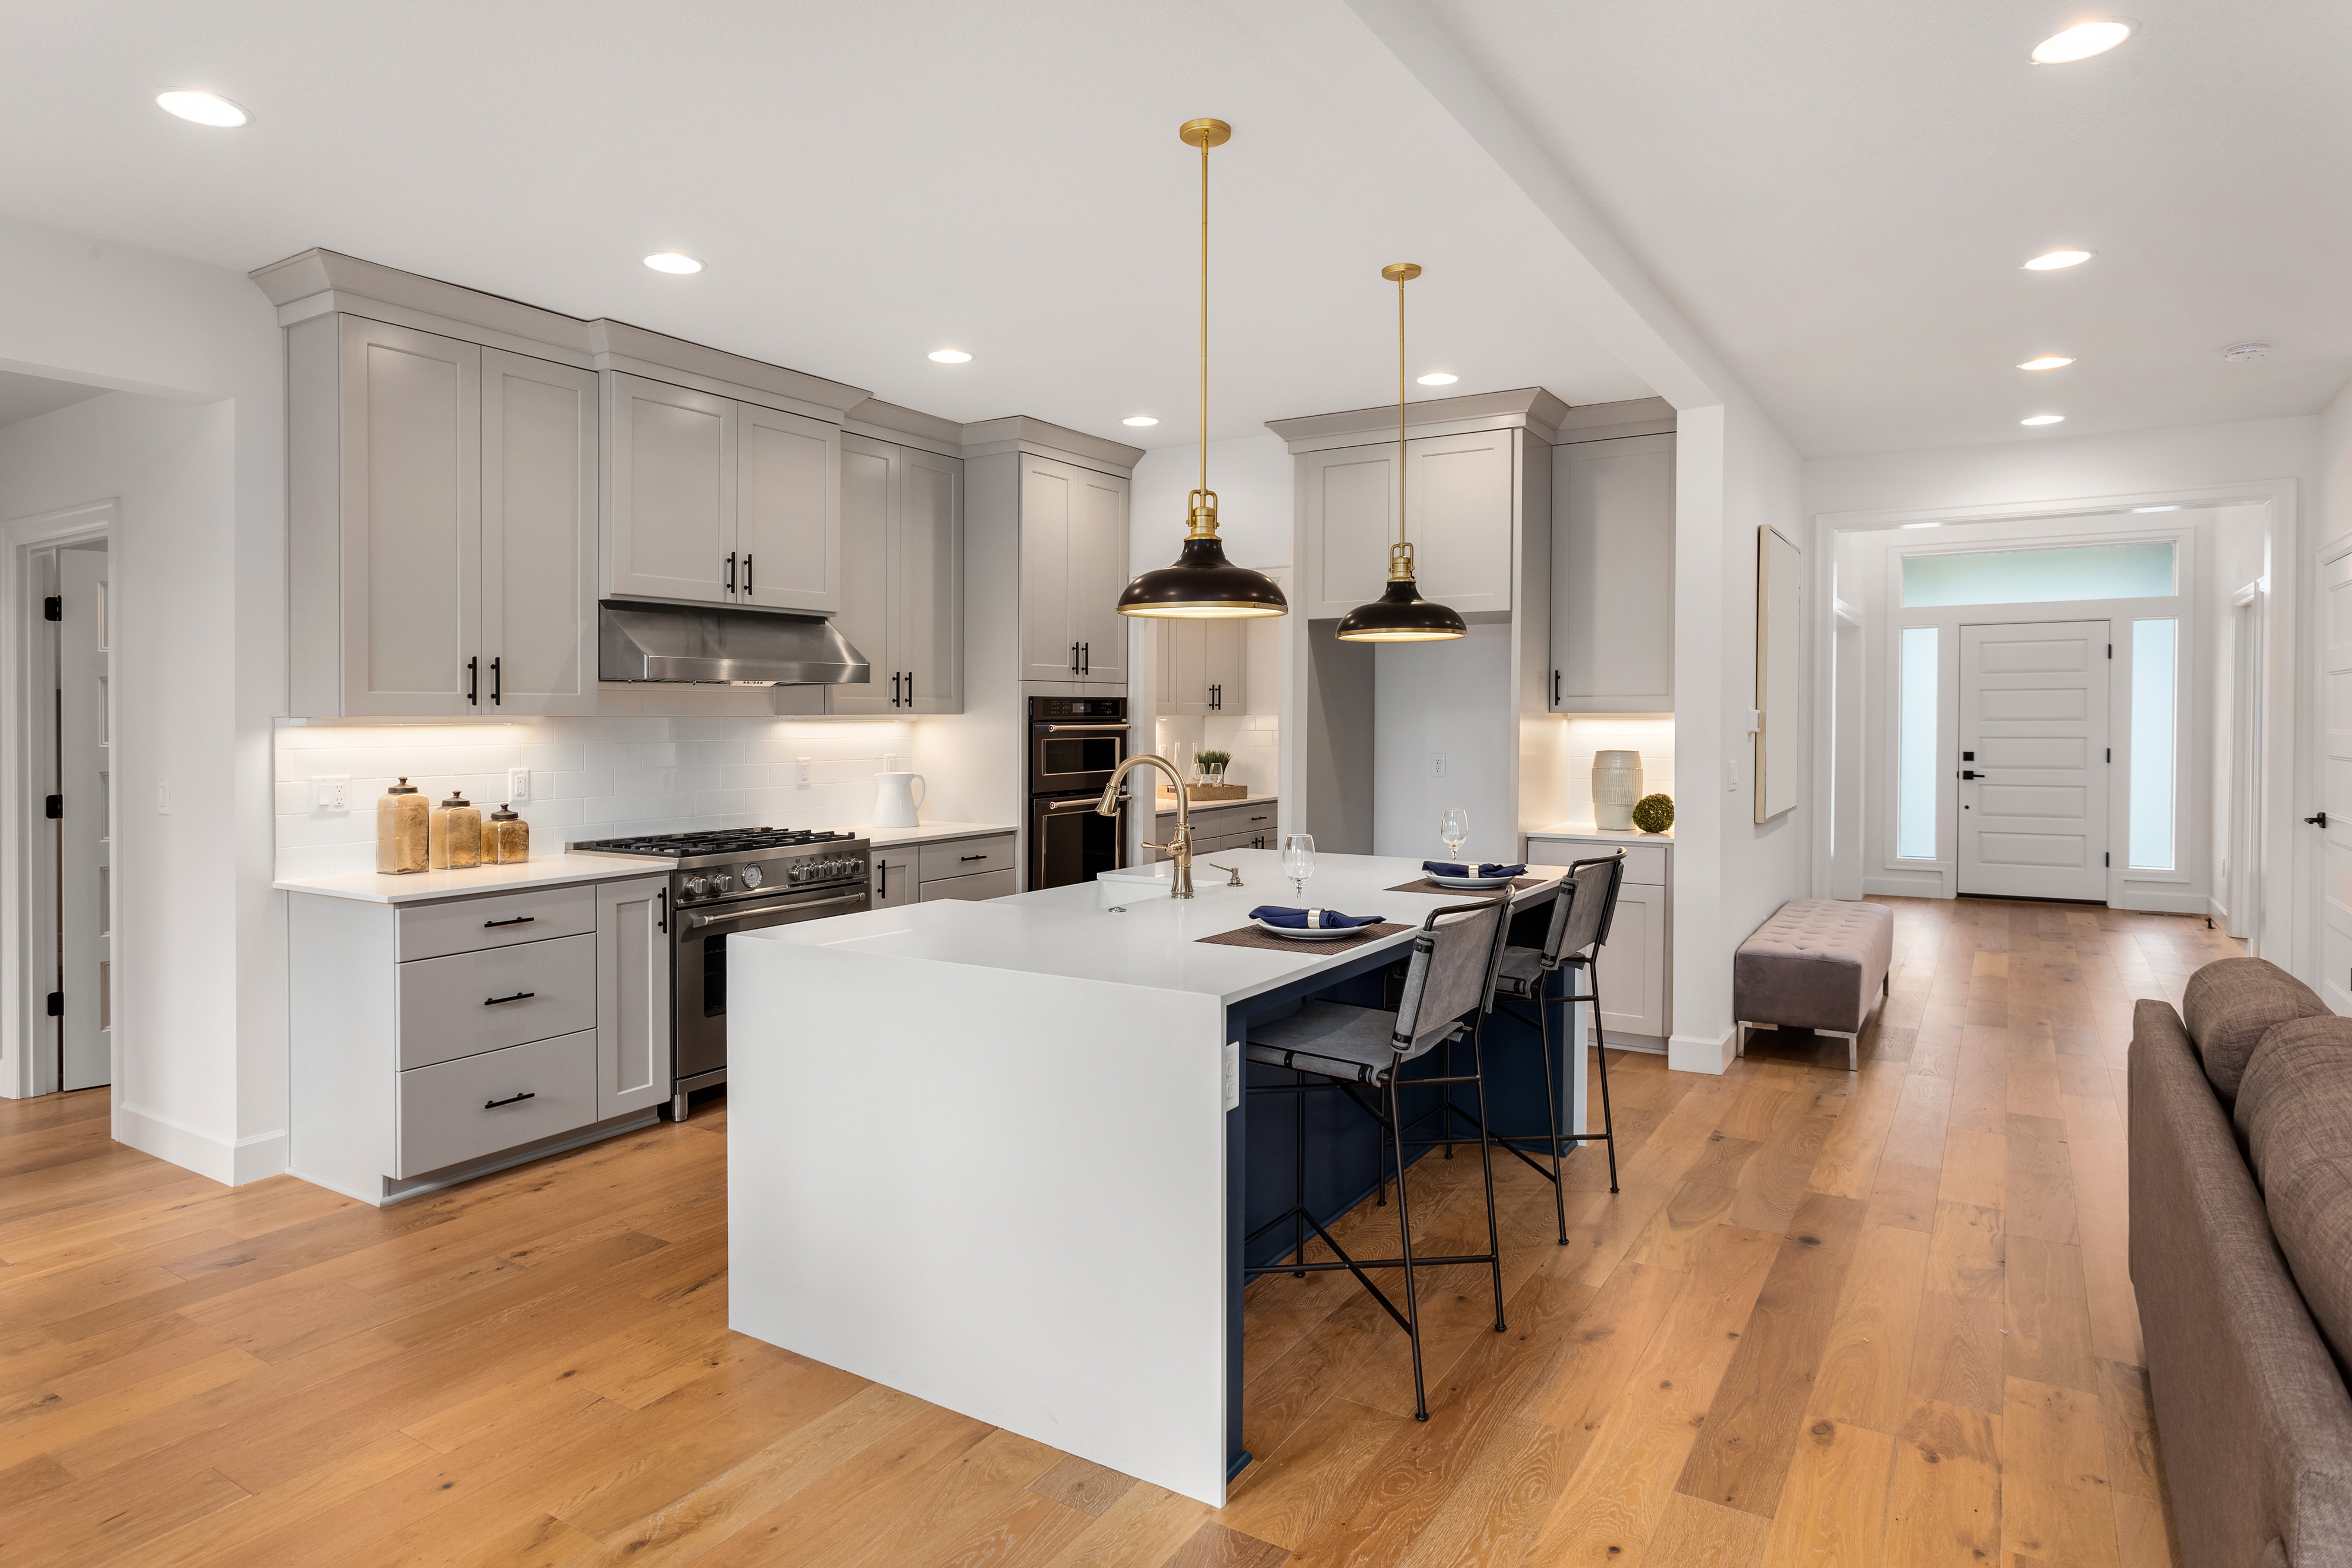 Luxury kitchen with hardwood floors and greige cabinets